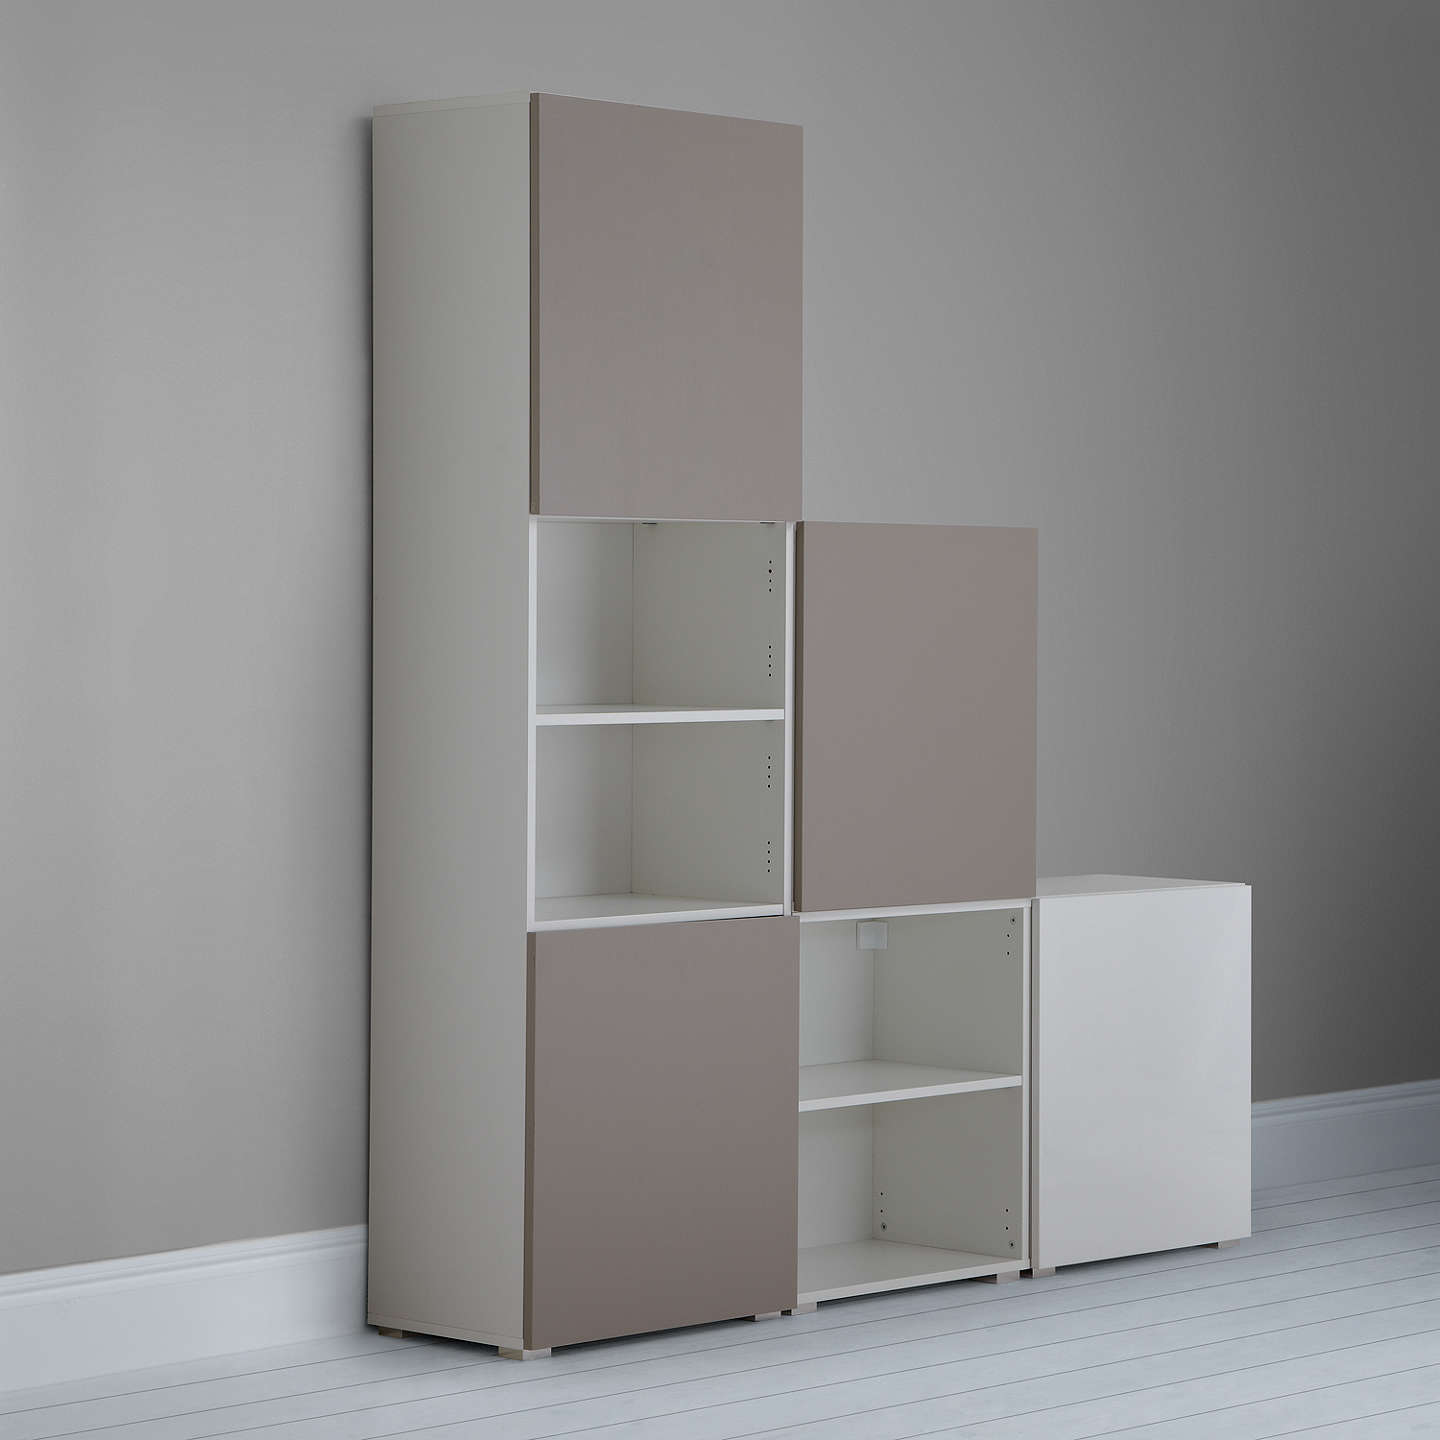 BuyHouse by John Lewis Mix it Tall 180cm 4-Door Shelf Unit, White/Mocha Online at johnlewis.com